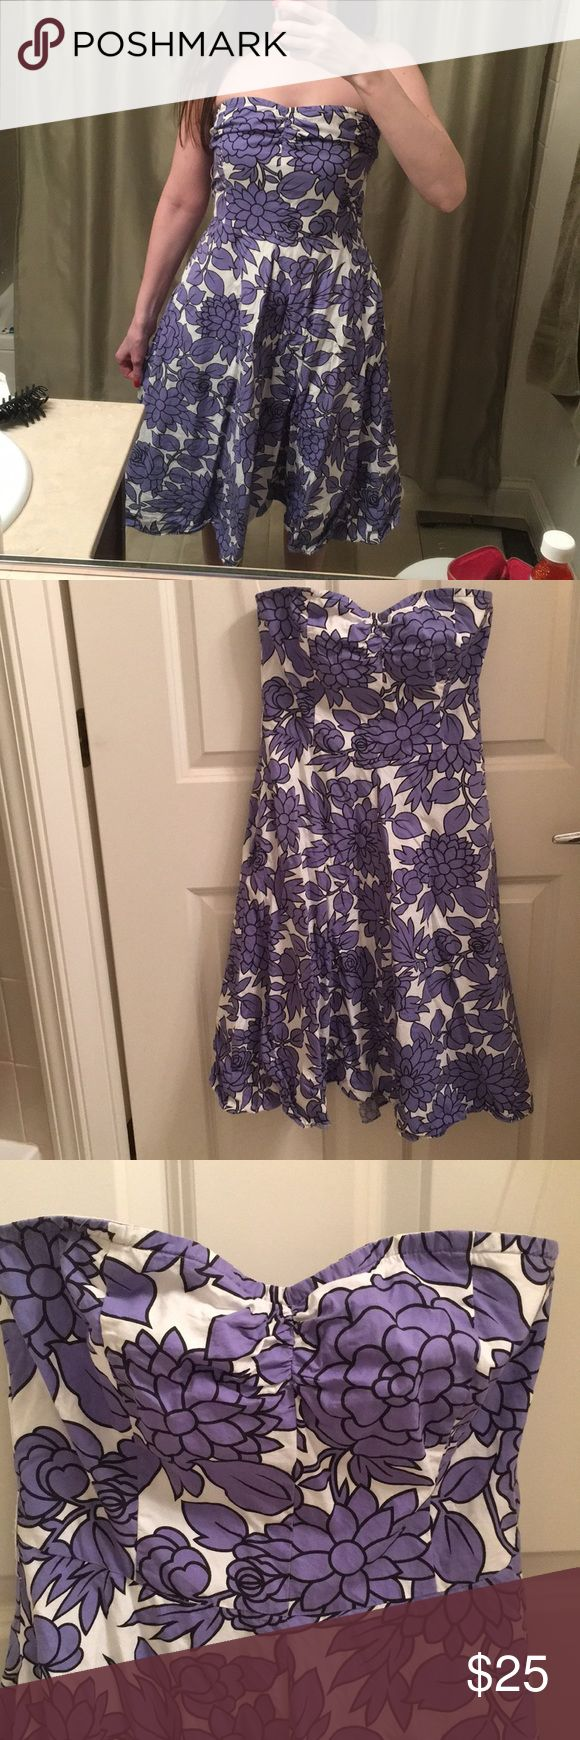 Strapless floral Guess Dress The dress says size 5, but fits like a size 2. Pretty floral design, cotton, perfect for spring and summer, zipper in the back. Guess Dresses Strapless